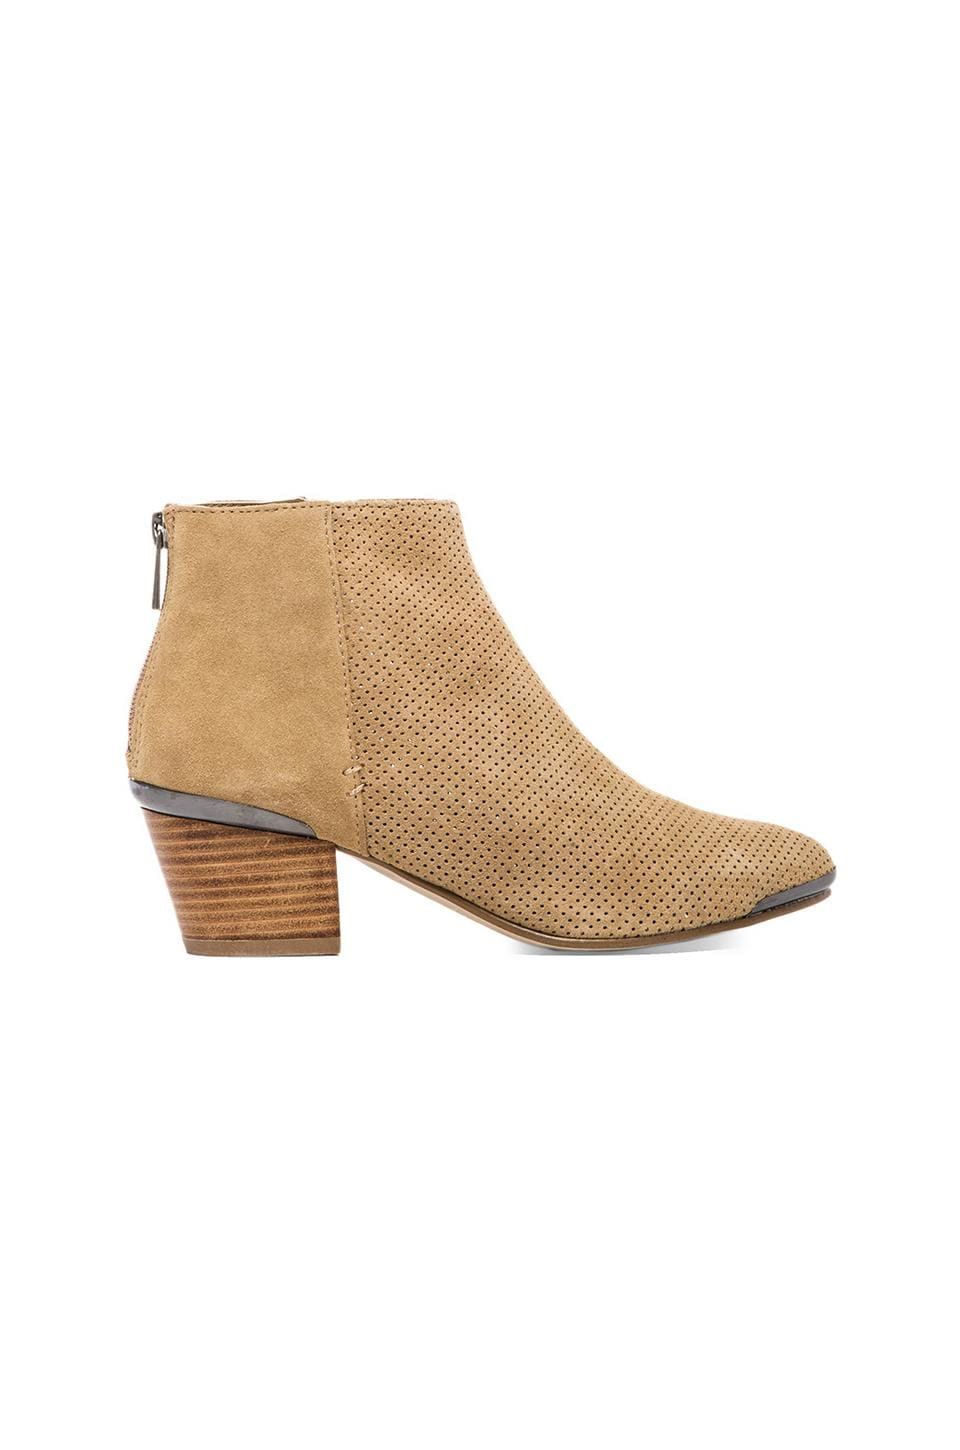 Dolce Vita Navi Bootie in Natural